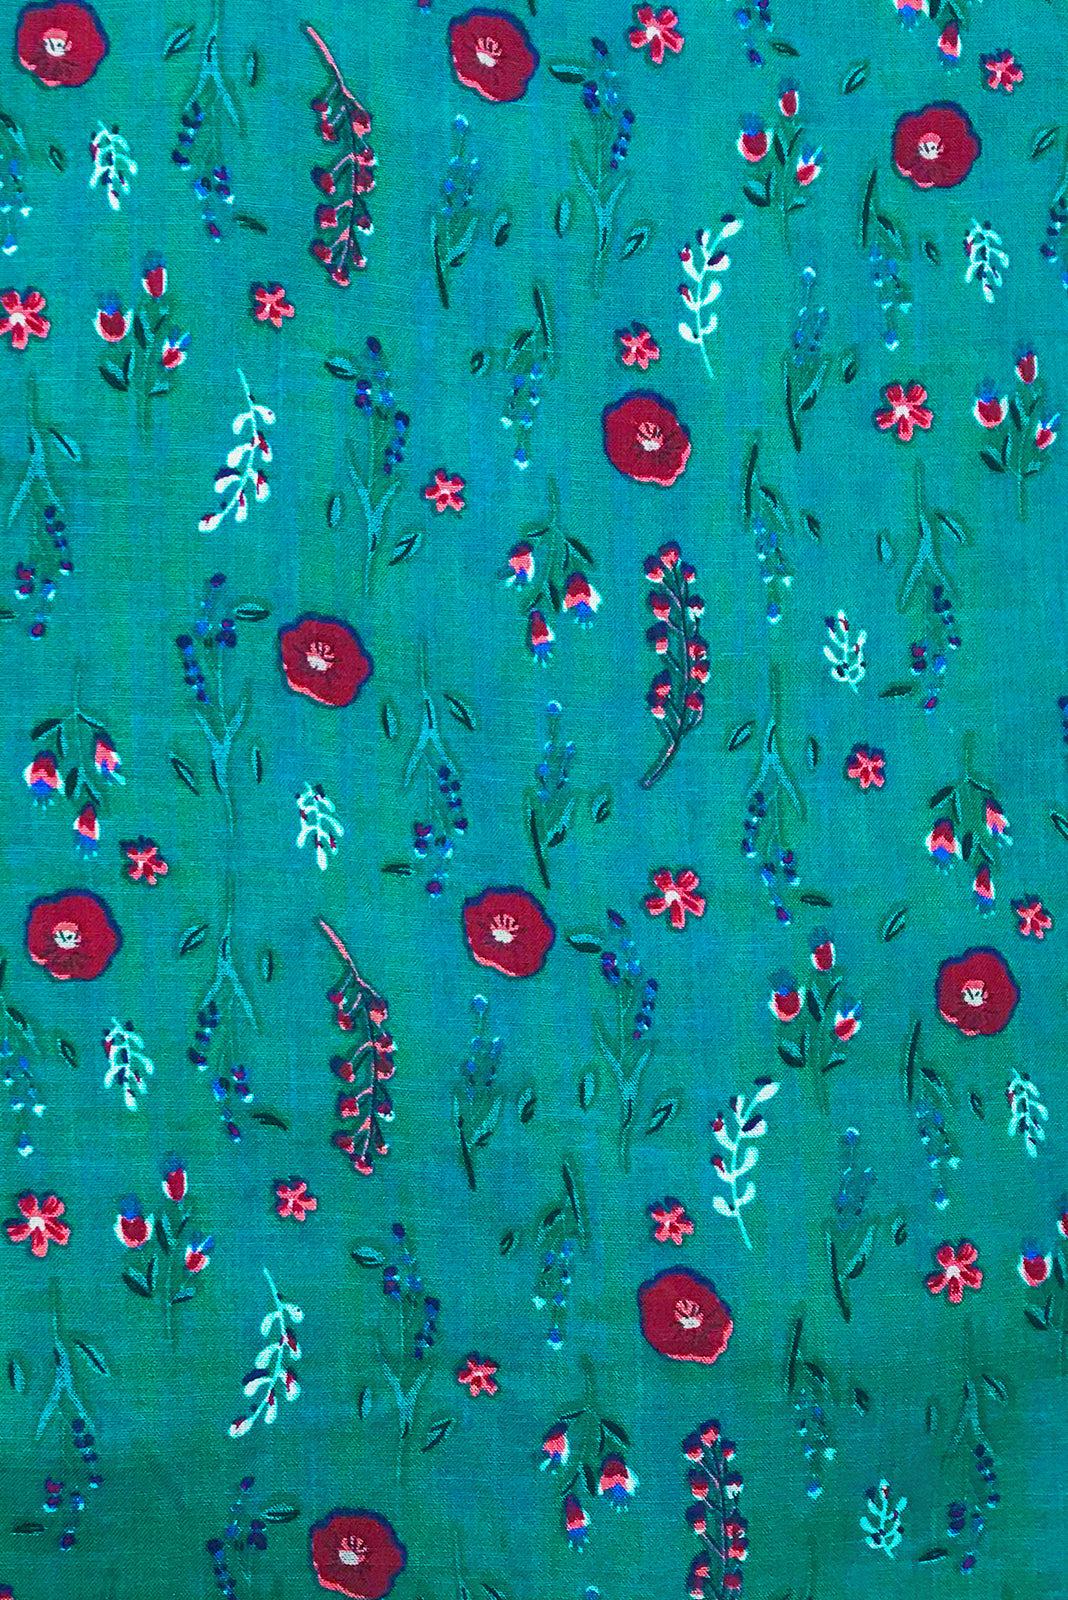 Fabric Swatch of Sails Emerald Garden Maxi Skirt features woven 100% cotton in blue/green base with simple floral pattern.